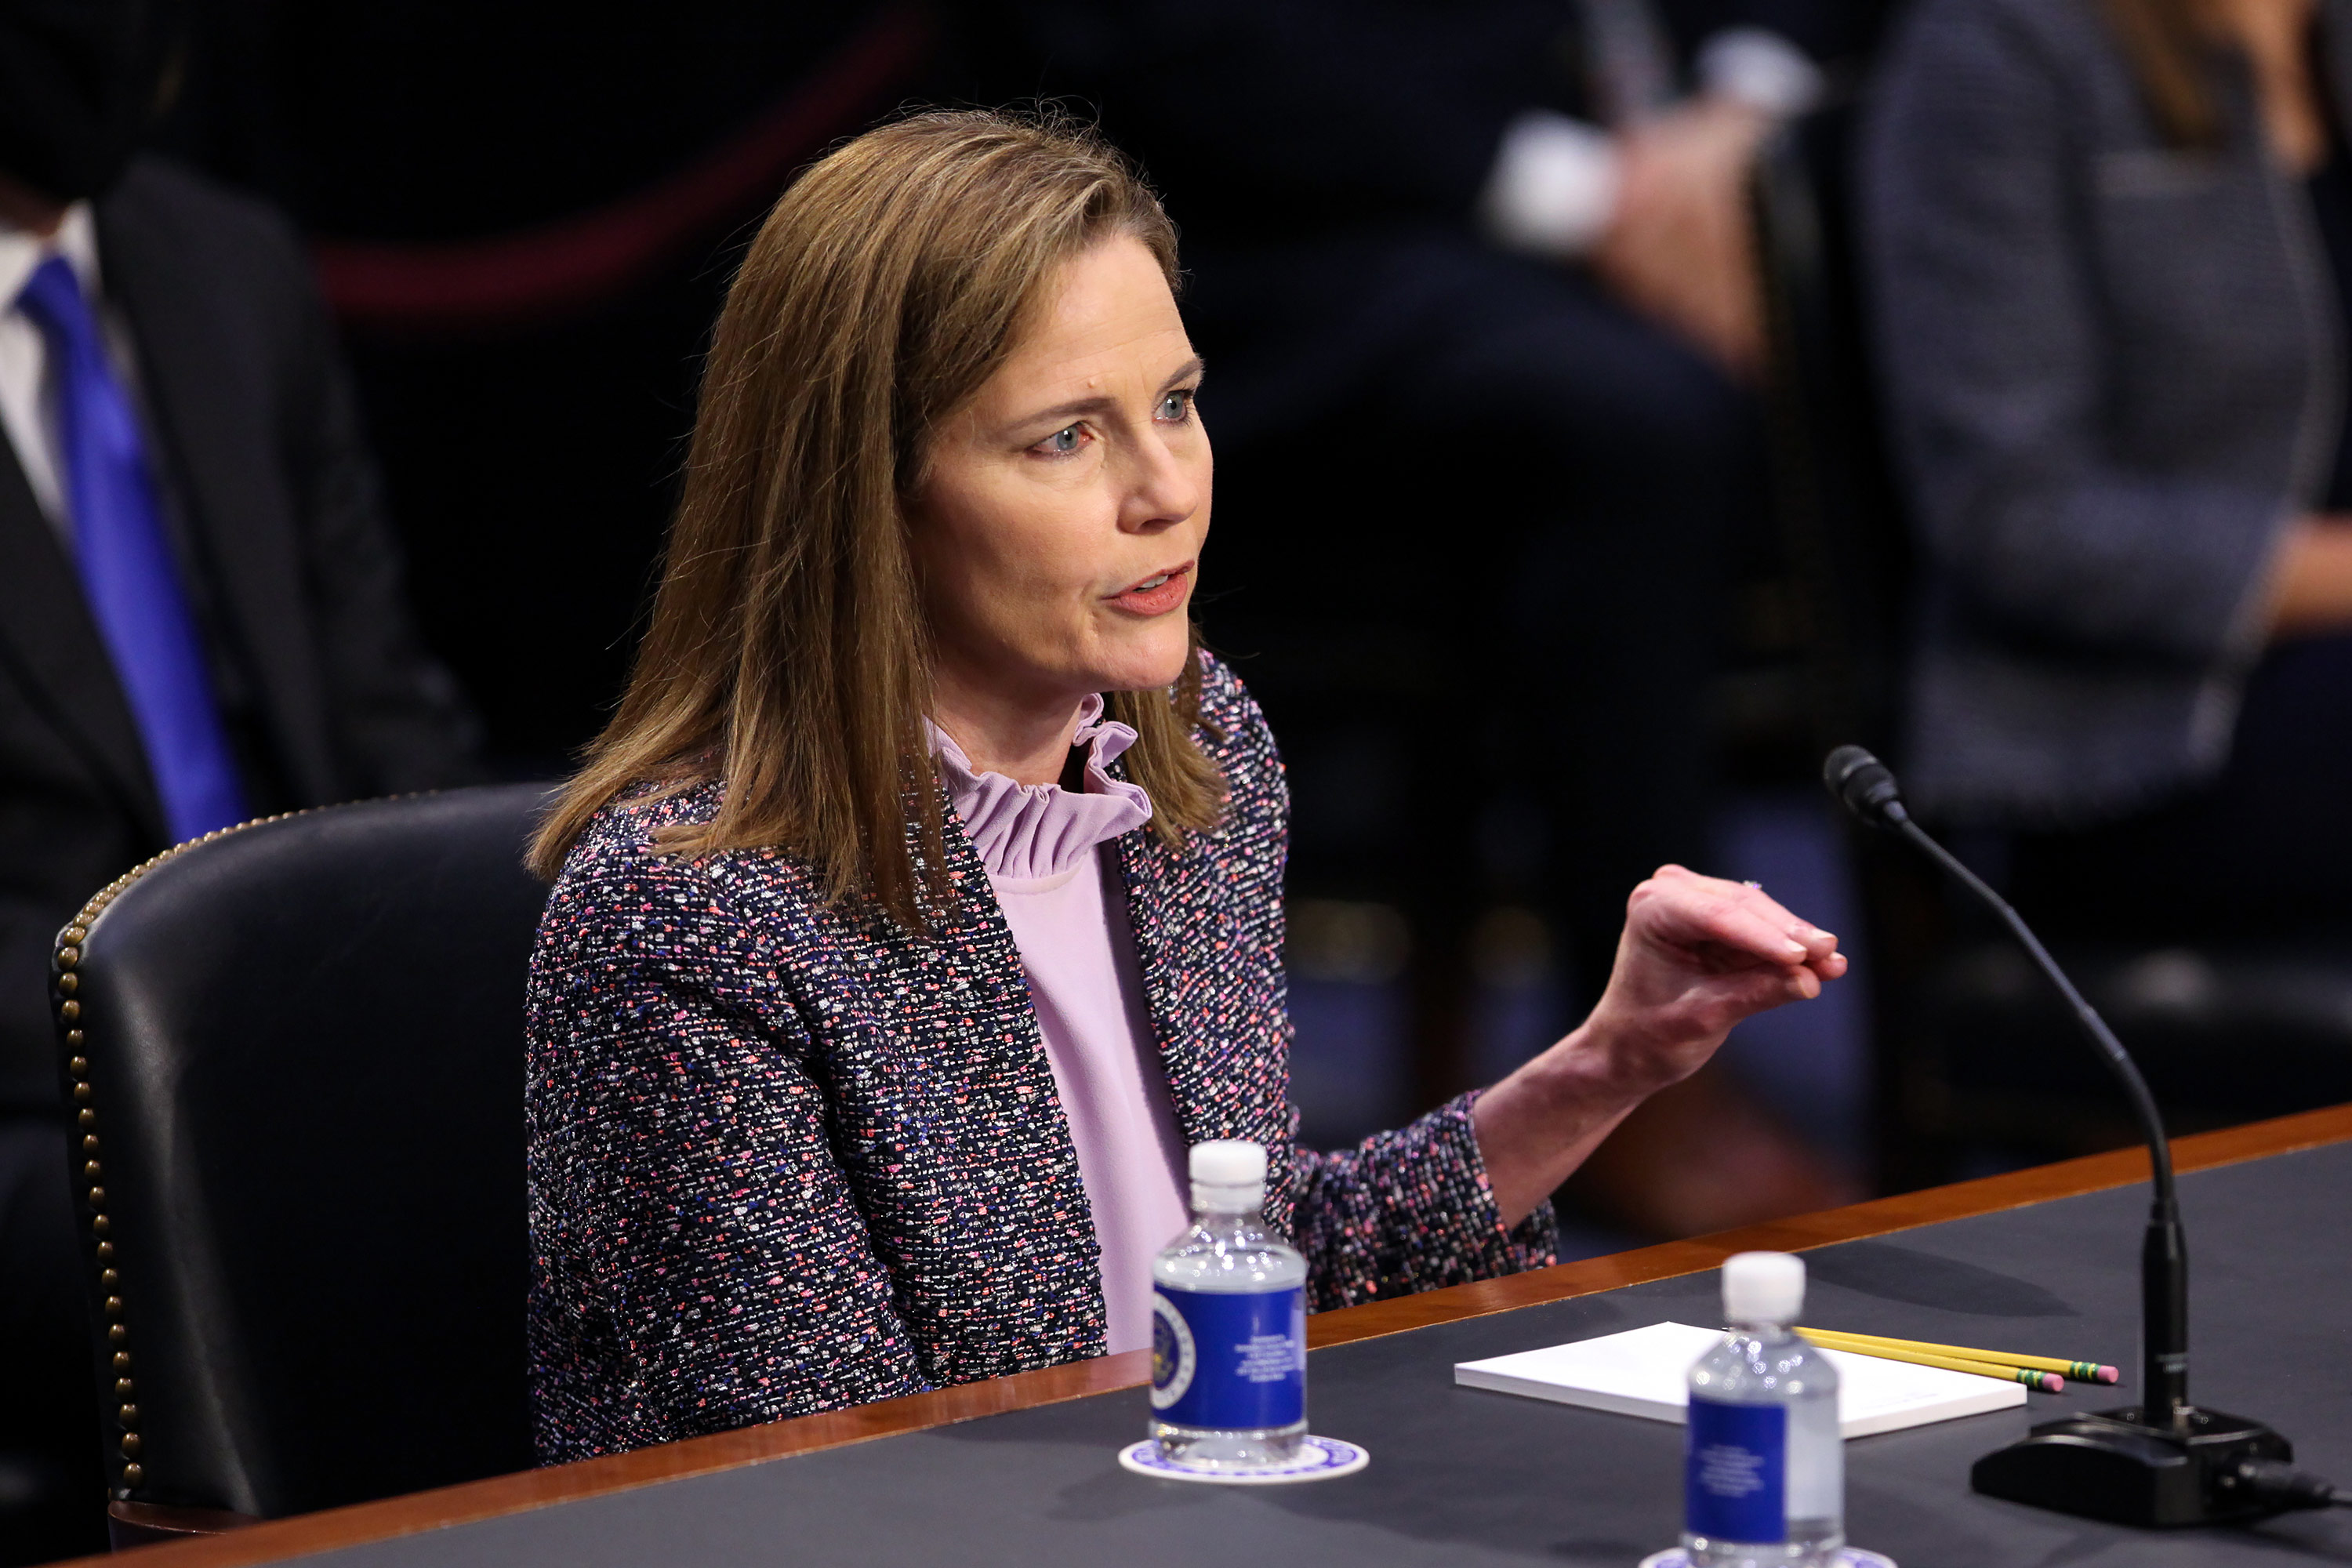 Supreme Court nominee Judge Amy Coney Barrett speaks on the third day of her confirmation hearing before the Senate Judiciary Committee on Capitol Hill on October 14 in Washington, DC.